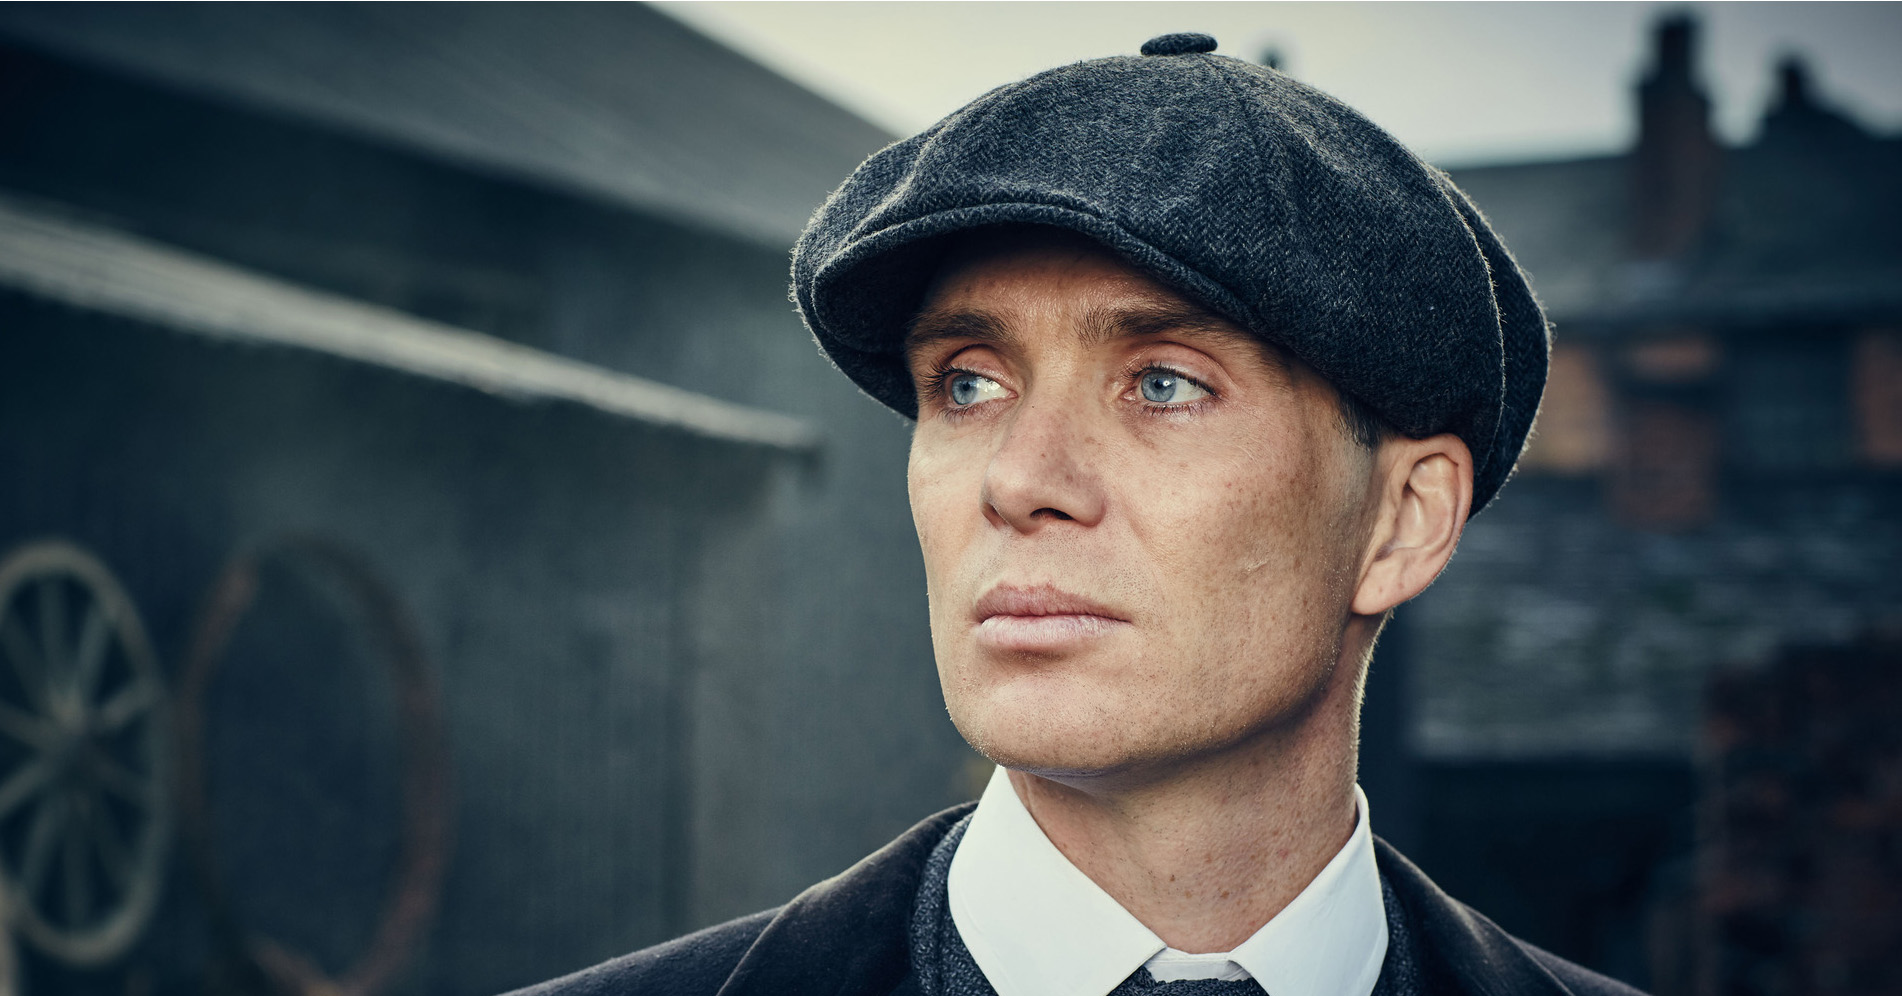 Look out for this INCREDIBLE Peaky Blinders fan art in the streets where you live